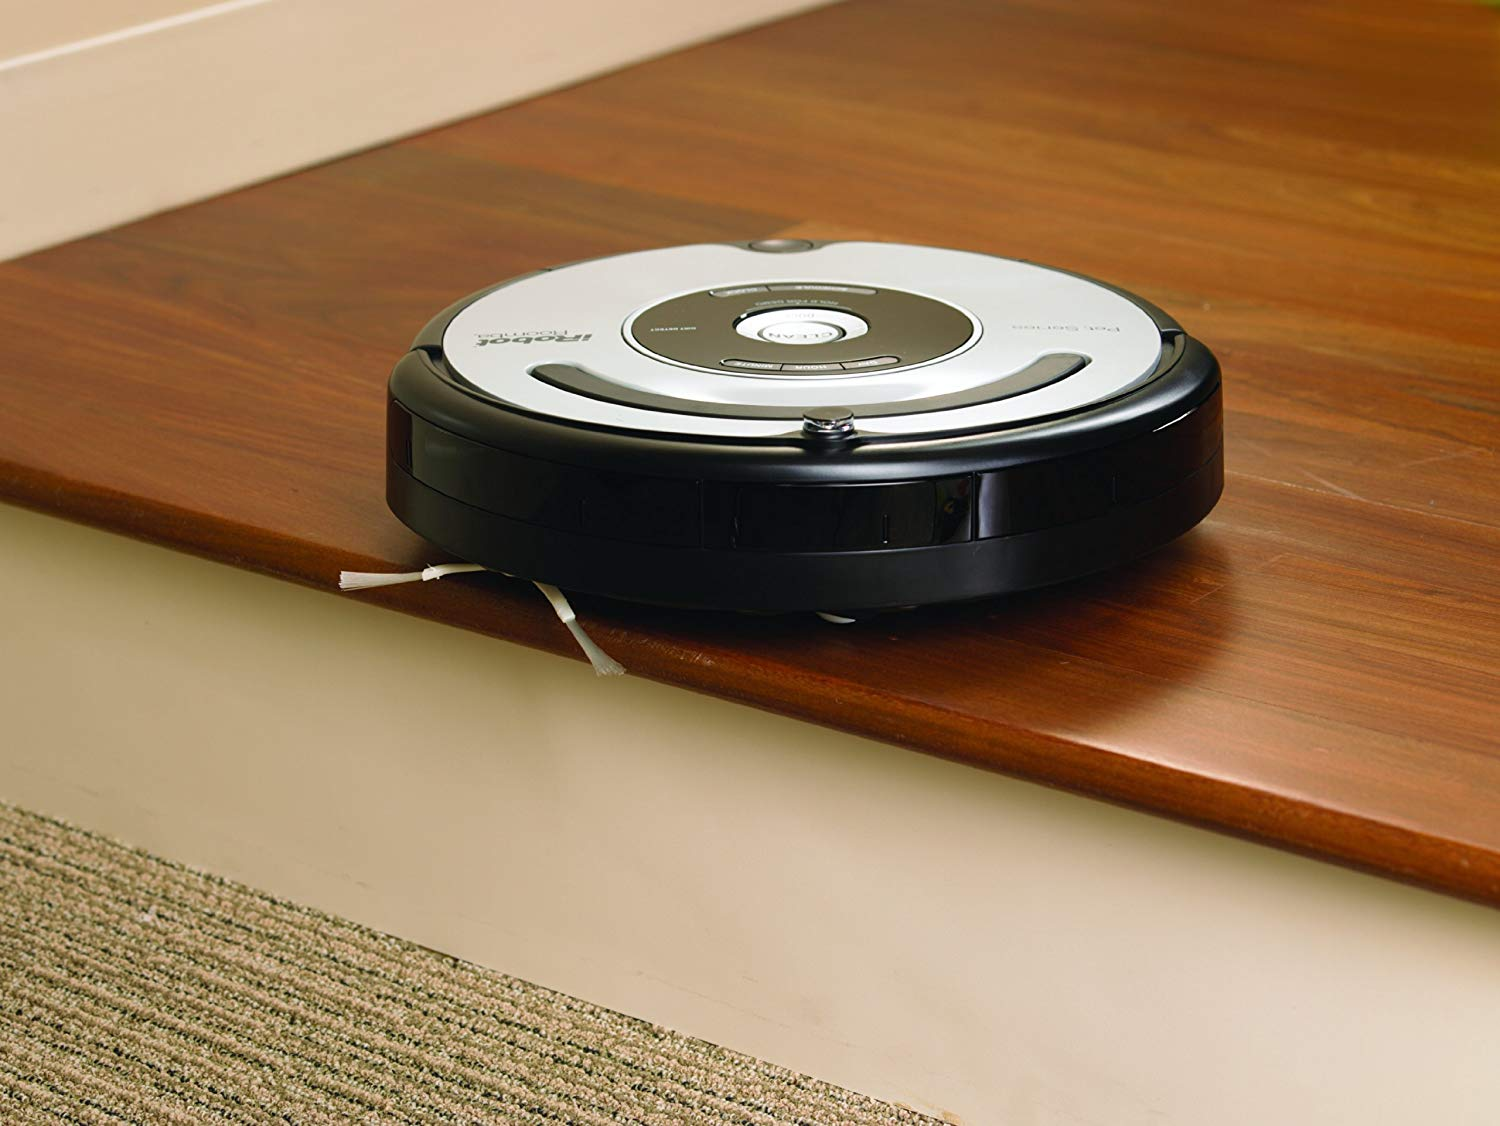 iRobot Roomba 564 PET Robot Aspirateur